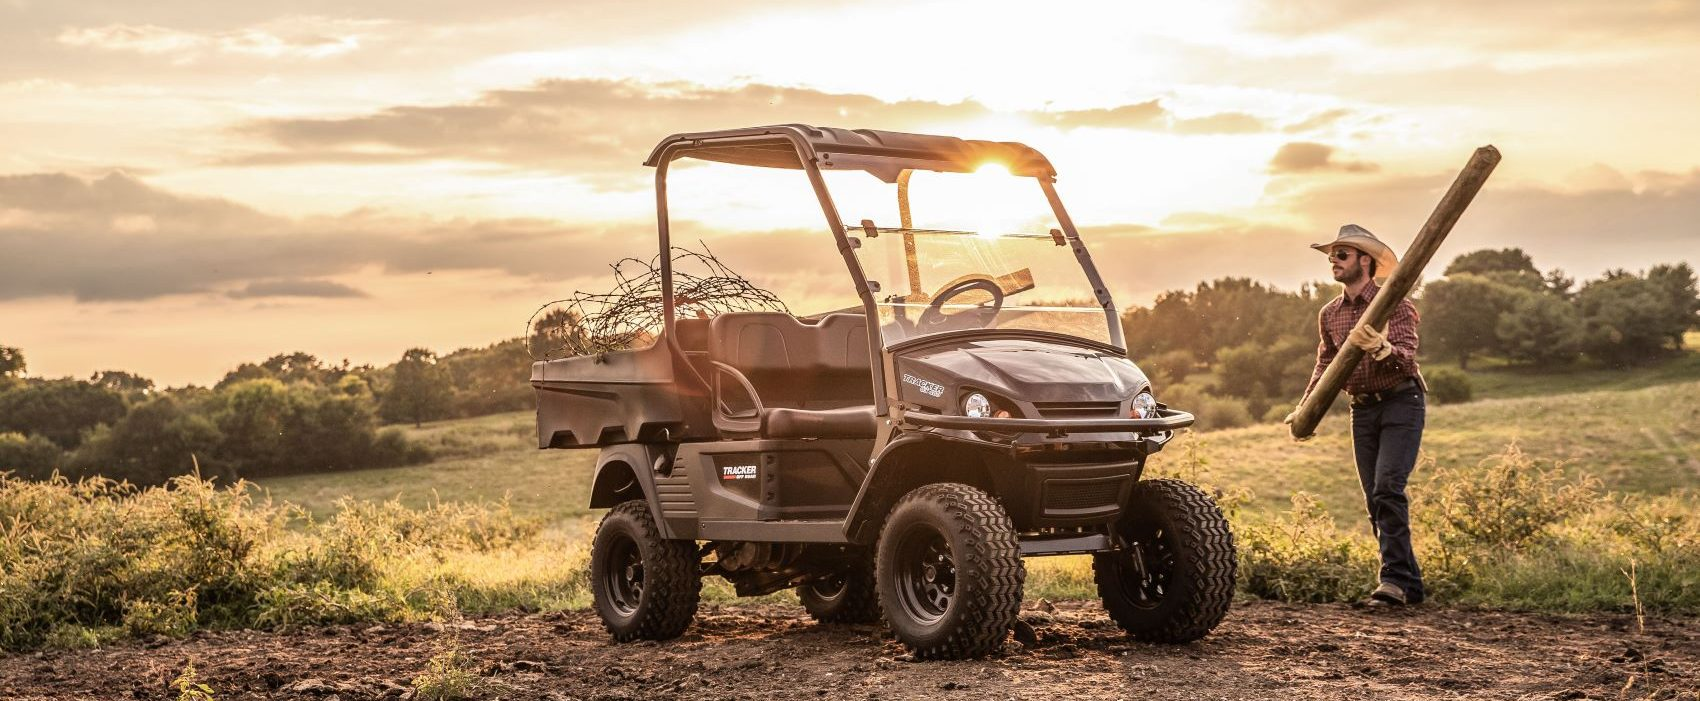 Tracker Off Road OX400